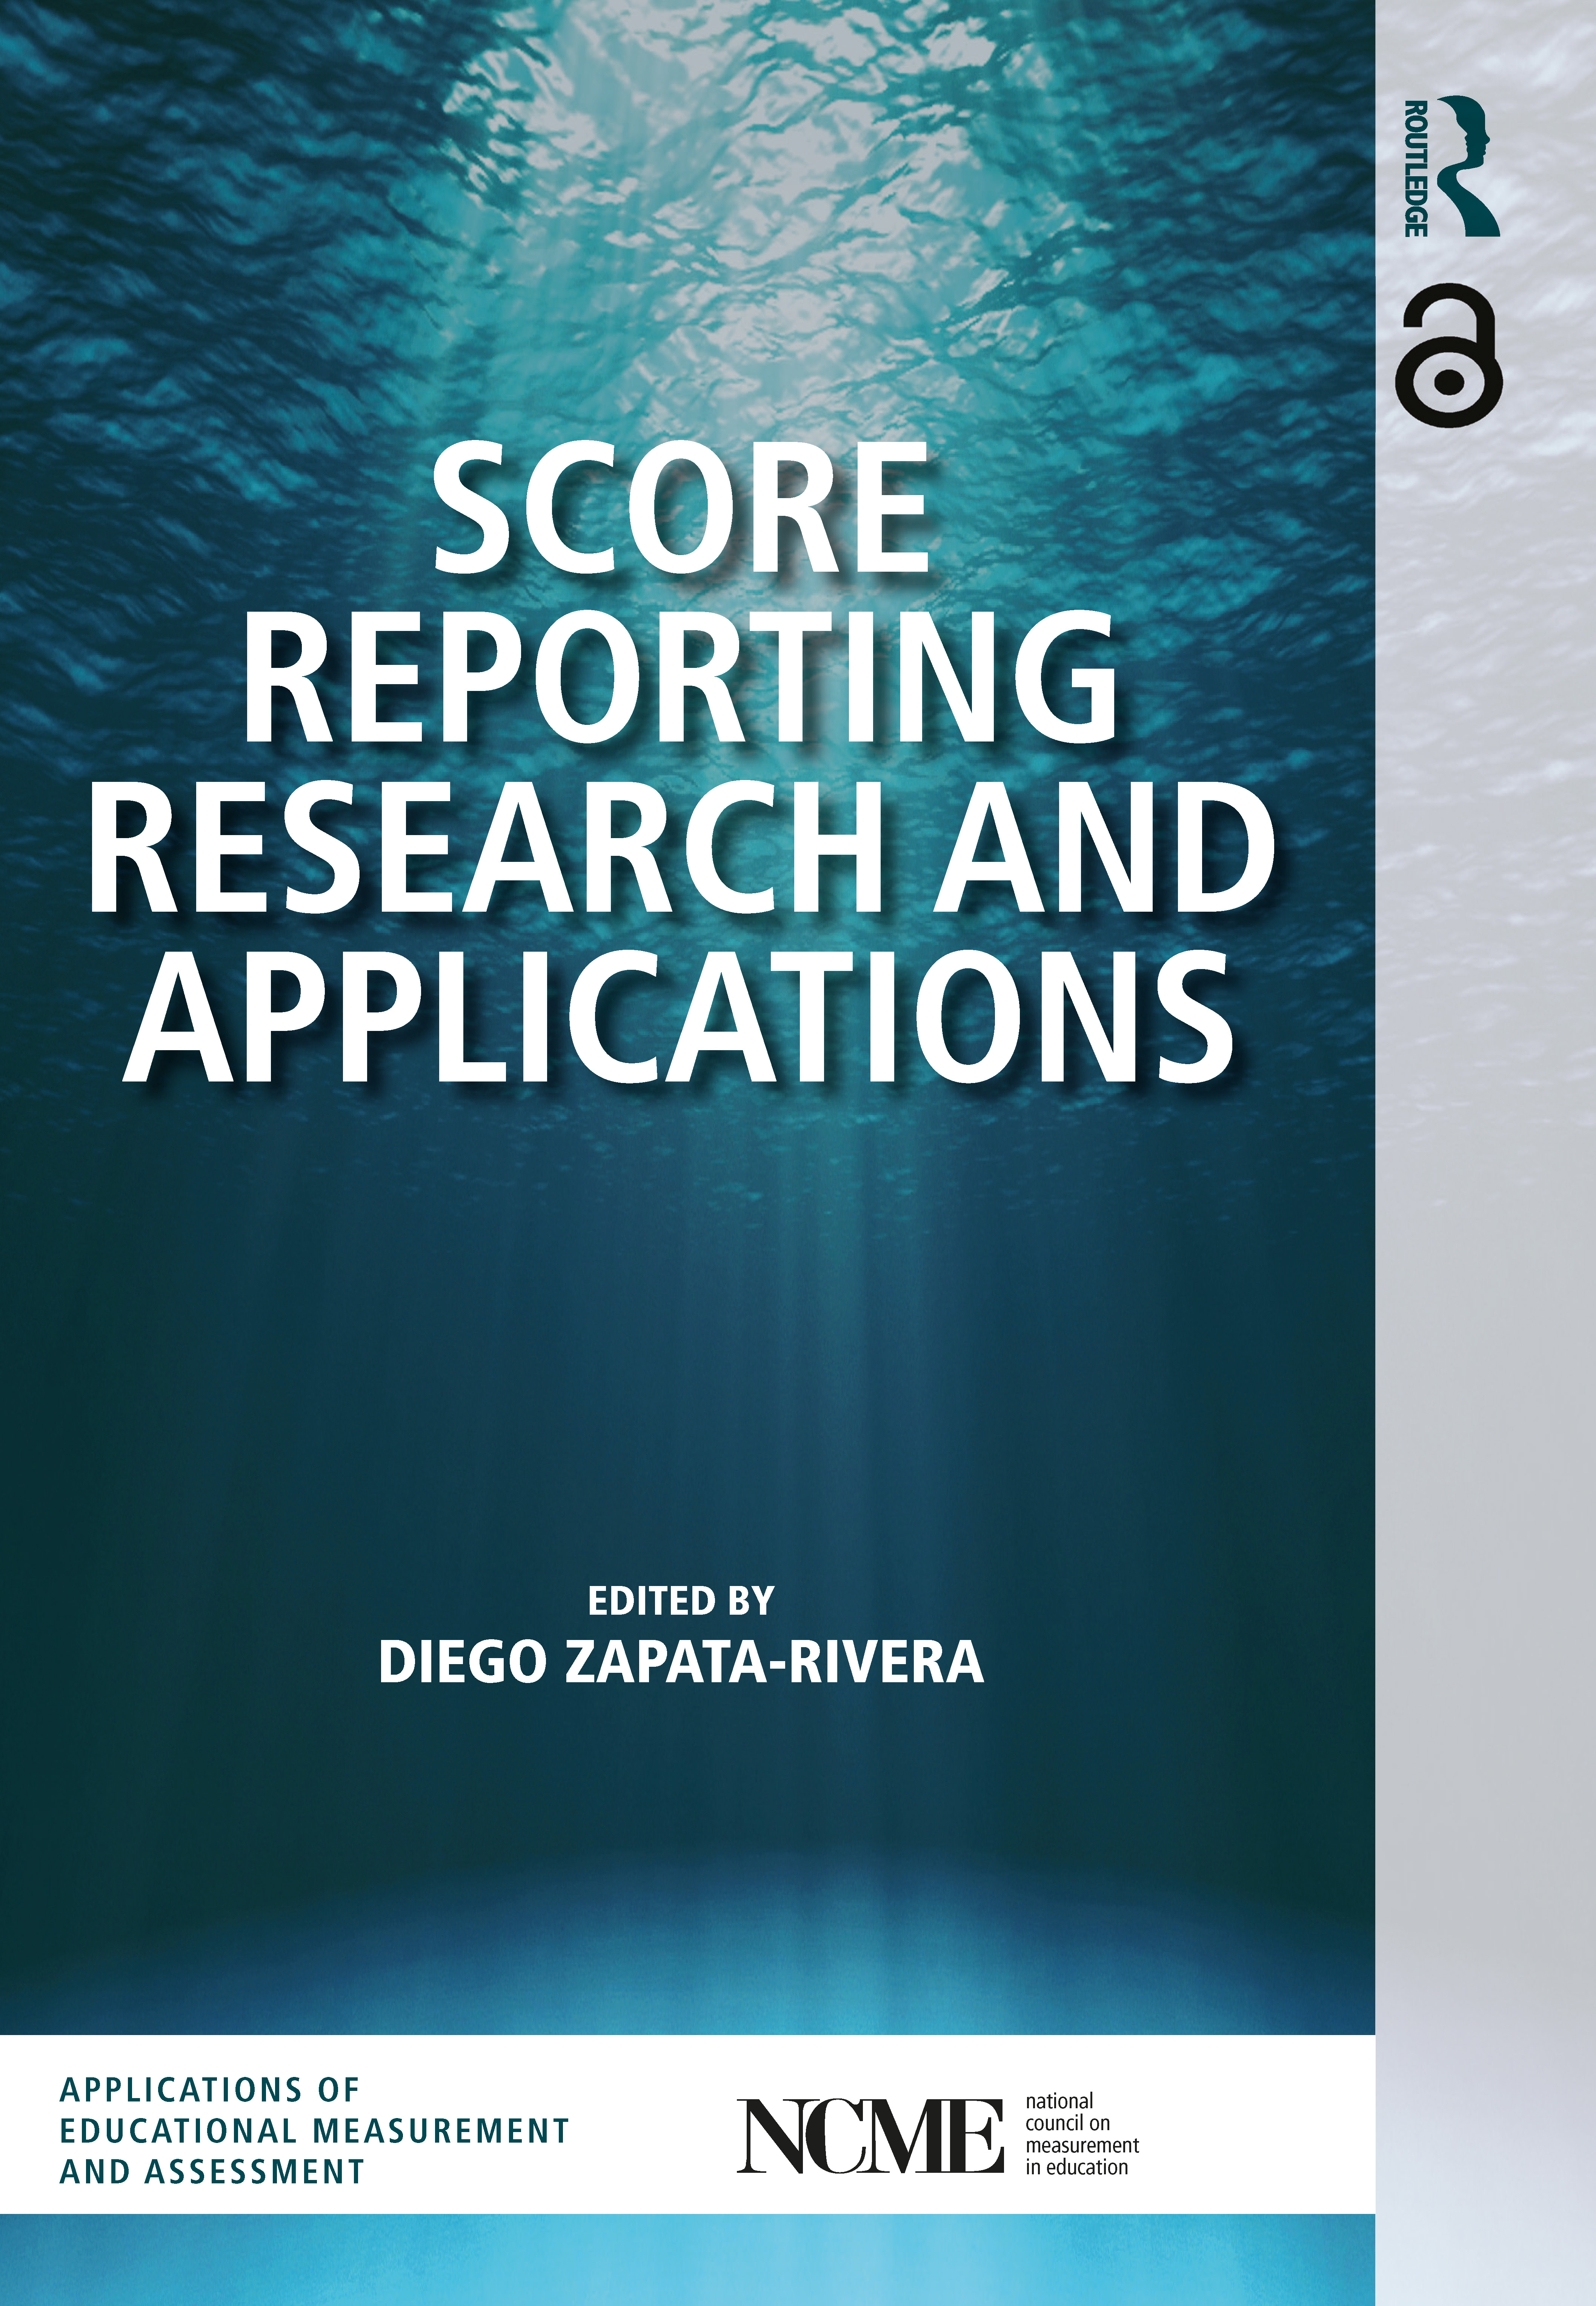 Score Reporting Research and Applications